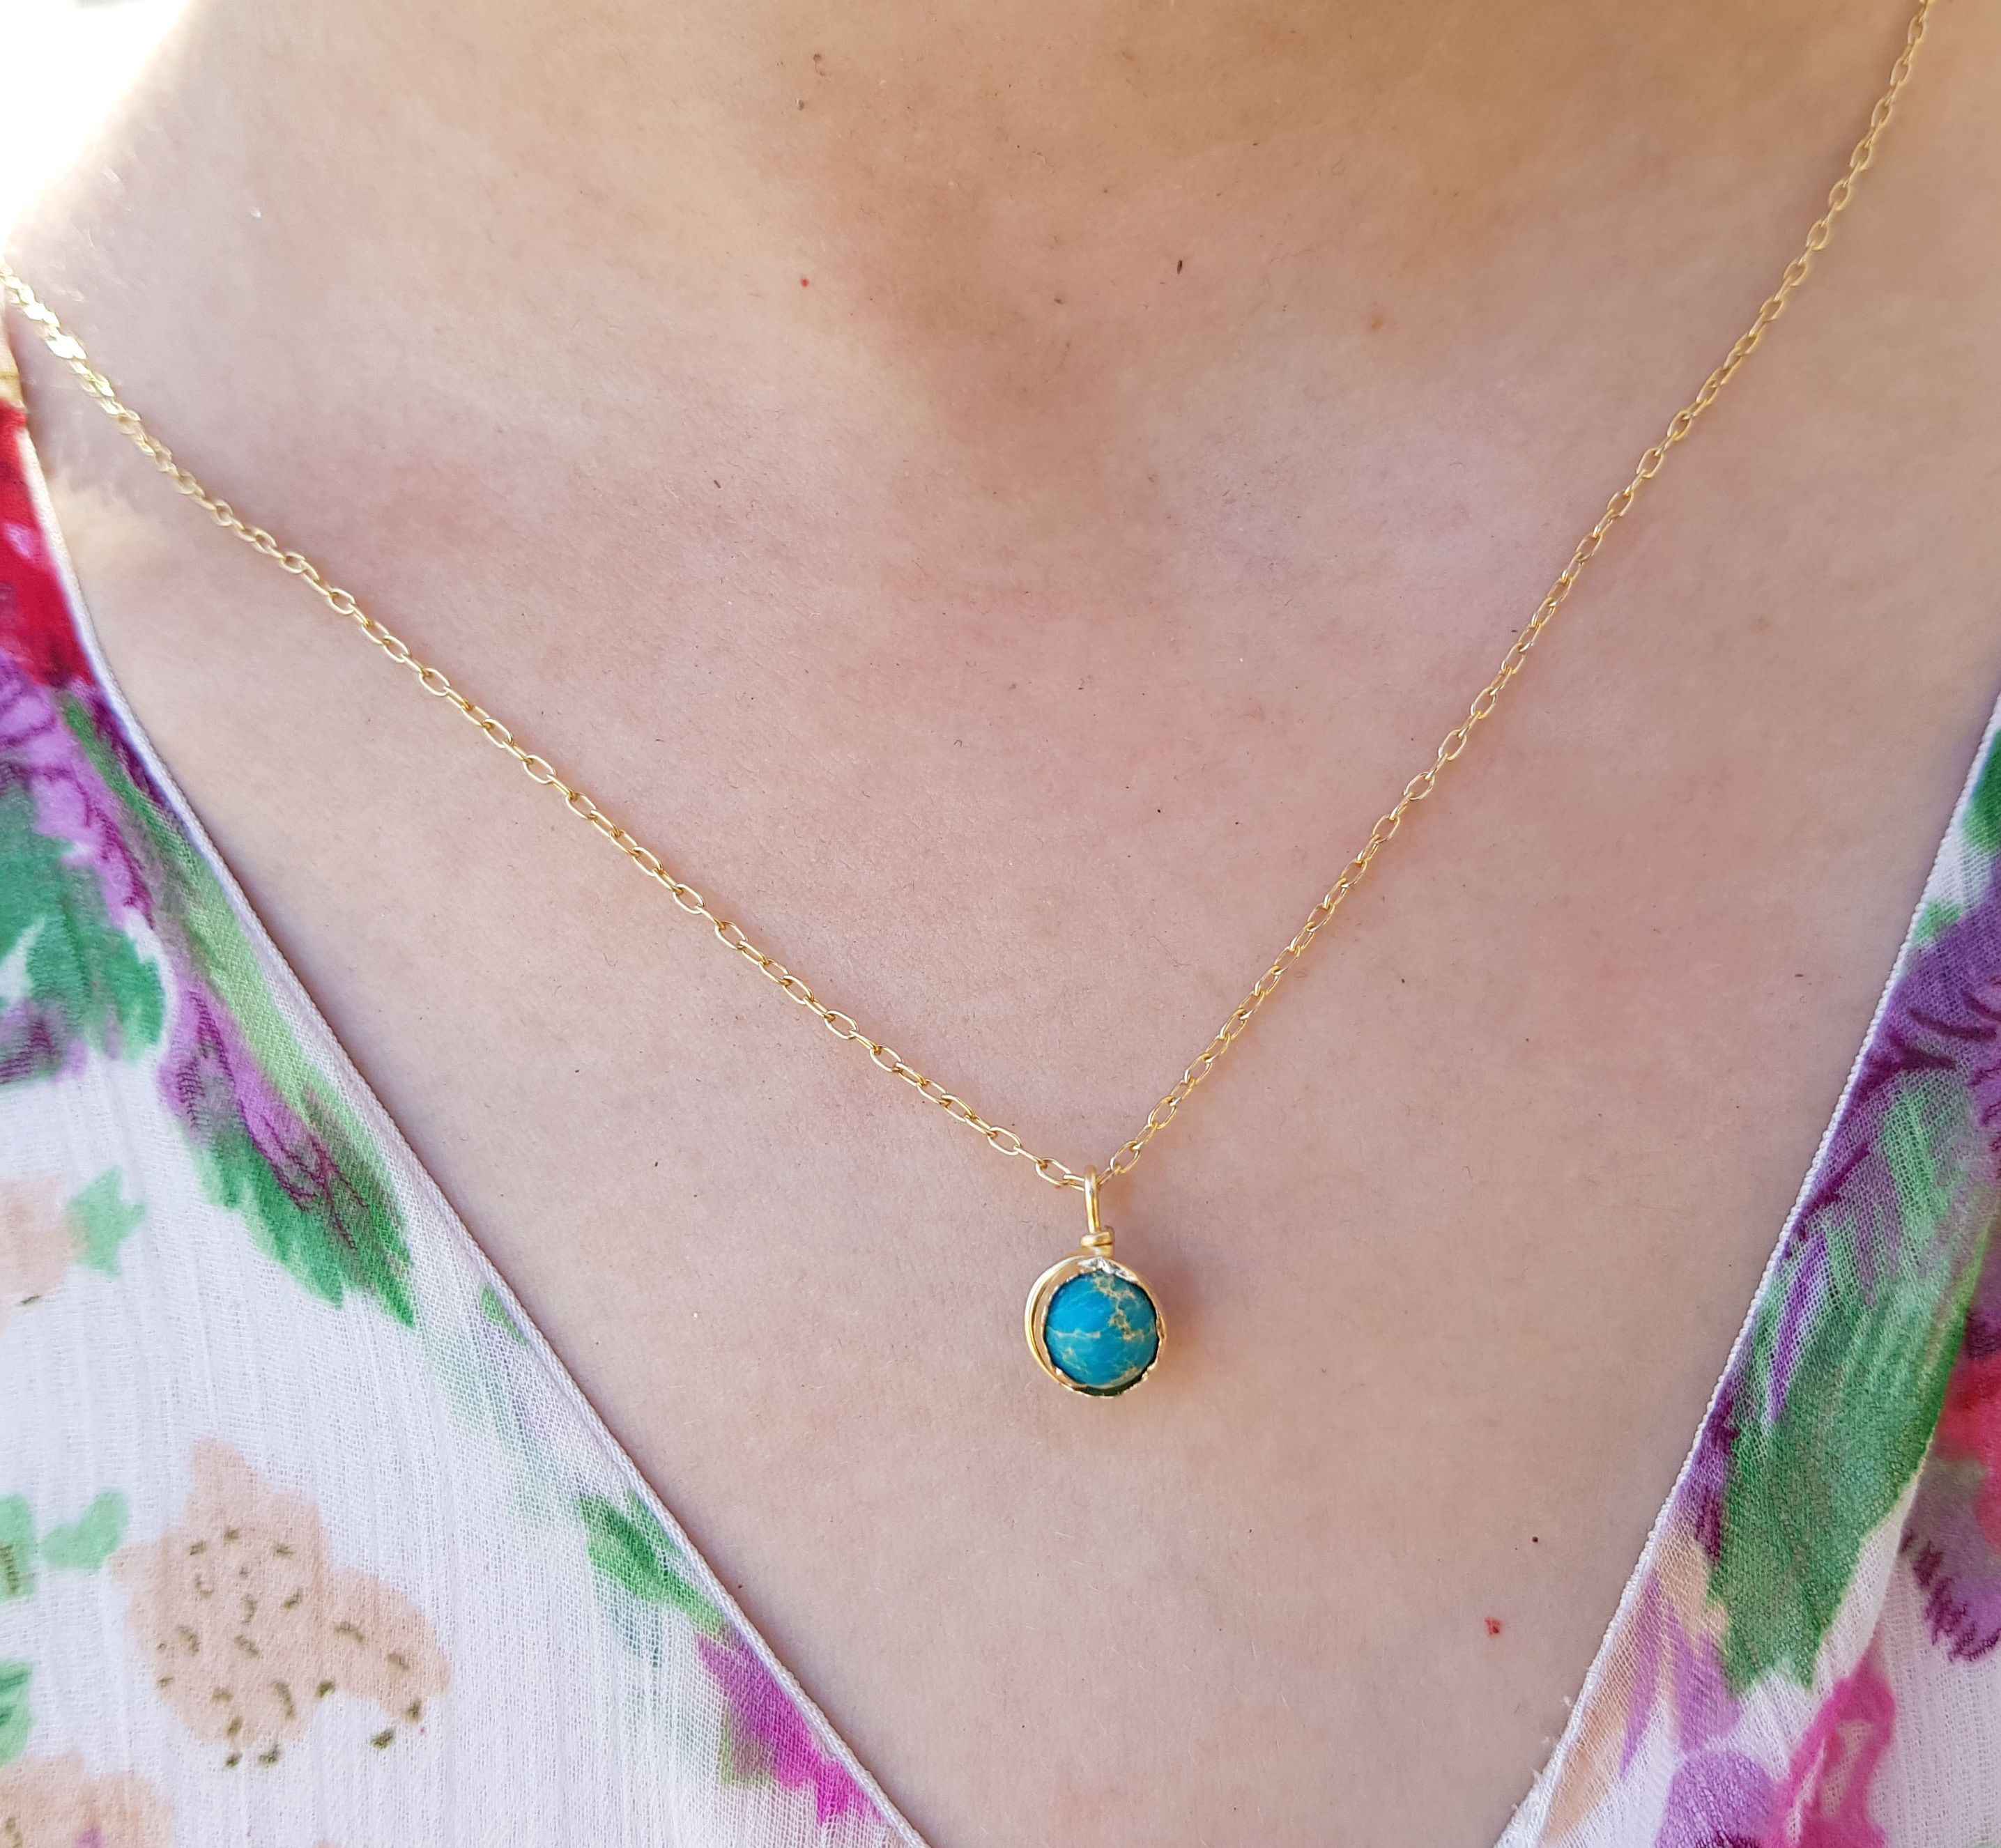 14k Gold Filled Turquoise Necklace Sterling Silver Gold Etsy Gold Necklace Women Turquoise Jewelry Boho Turquoise Stone Jewelry